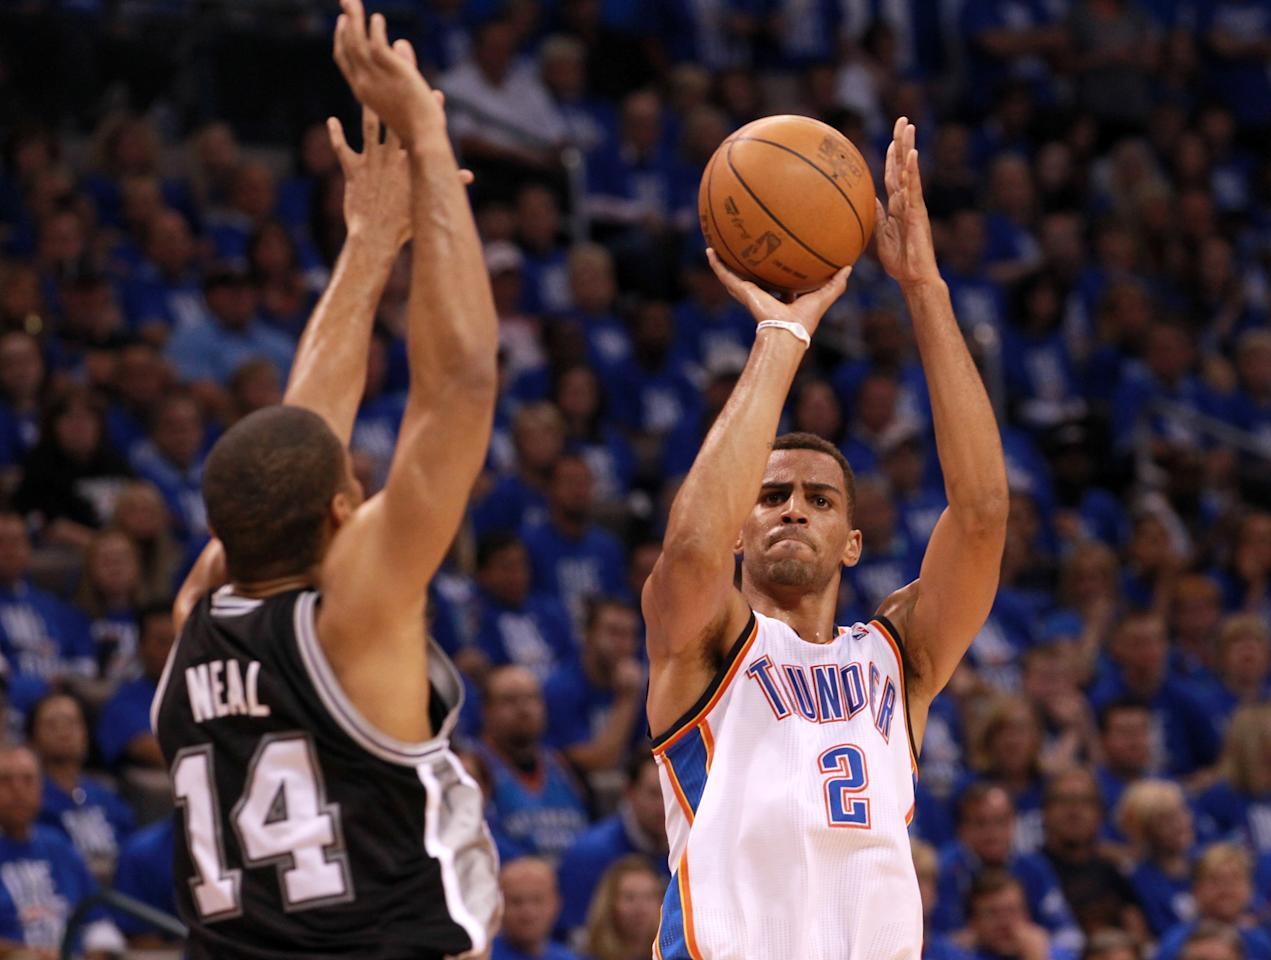 OKLAHOMA CITY, OK - MAY 31:  Thabo Sefolosha #2 of the Oklahoma City Thunder shoots over Gary Neal #14 of the San Antonio Spurs in the third quarter in Game Five of the Western Conference Finals of the 2012 NBA Playoffs at Chesapeake Energy Arena on May 31, 2012 in Oklahoma City, Oklahoma. NOTE TO USER: User expressly acknowledges and agrees that, by downloading and or using this photograph, User is consenting to the terms and conditions of the Getty Images License Agreement.  (Photo by Ronald Martinez/Getty Images)